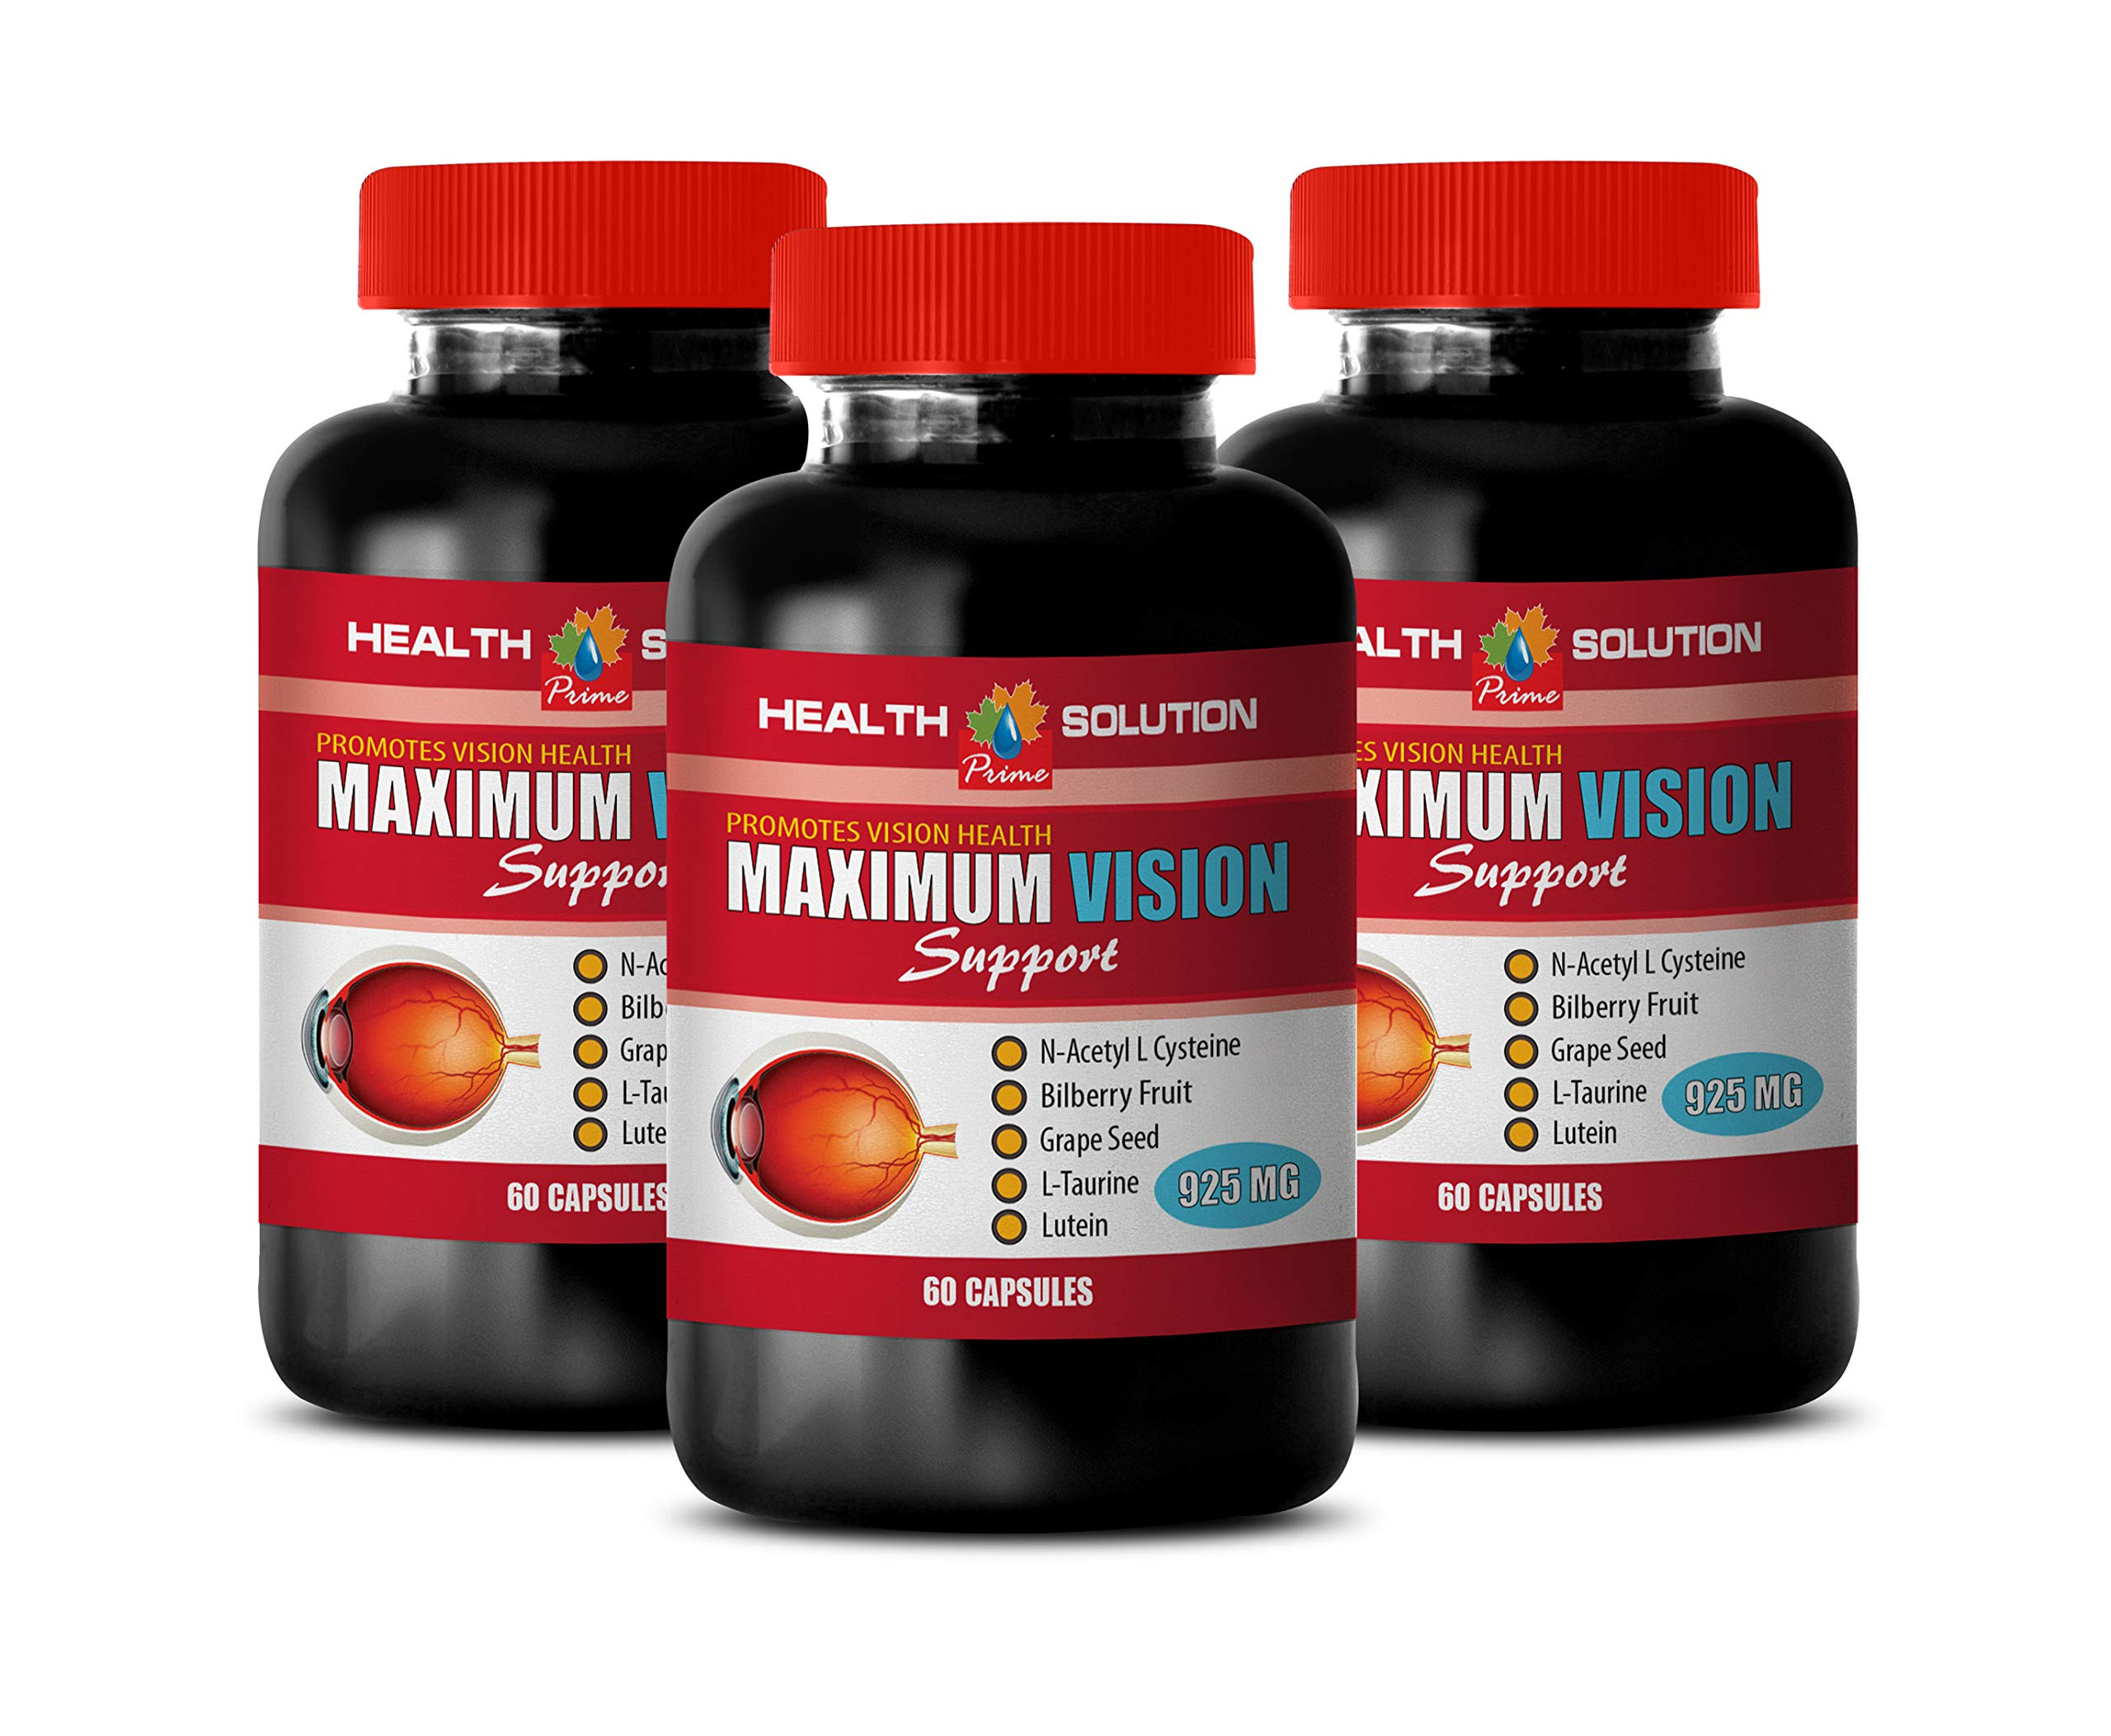 Vision Health with Lutein - Maximum Vision Support - Promotes Vision Health - Grape Seed Extract Capsules - 3 Bottle 180 Capsules